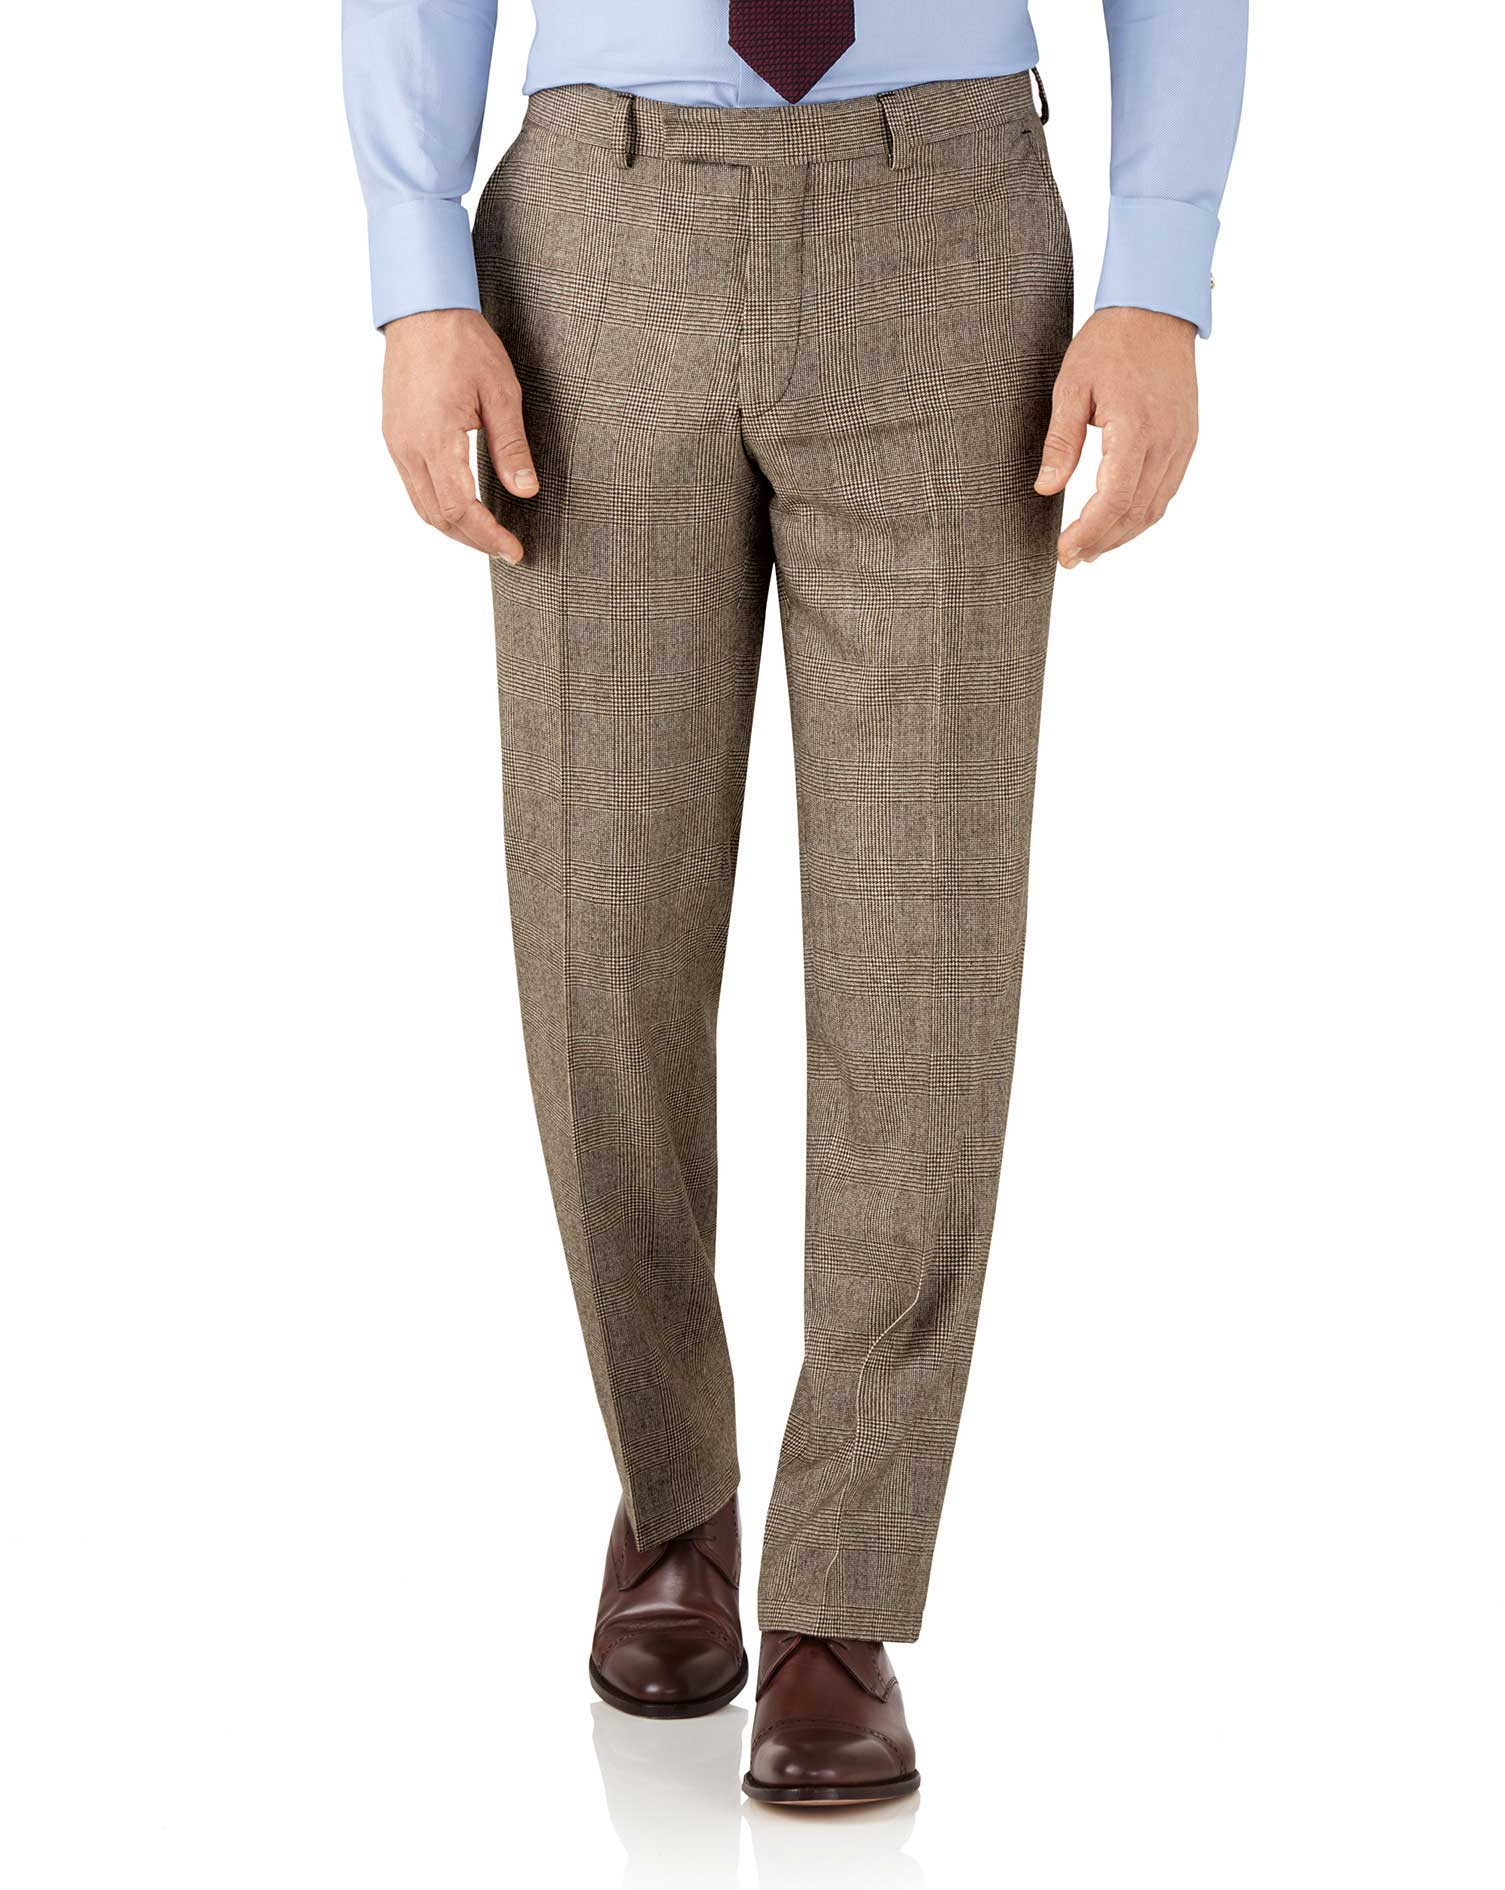 Tan Check Classic Fit British Serge Luxury Suit Trousers Size W38 L32 by Charles Tyrwhitt